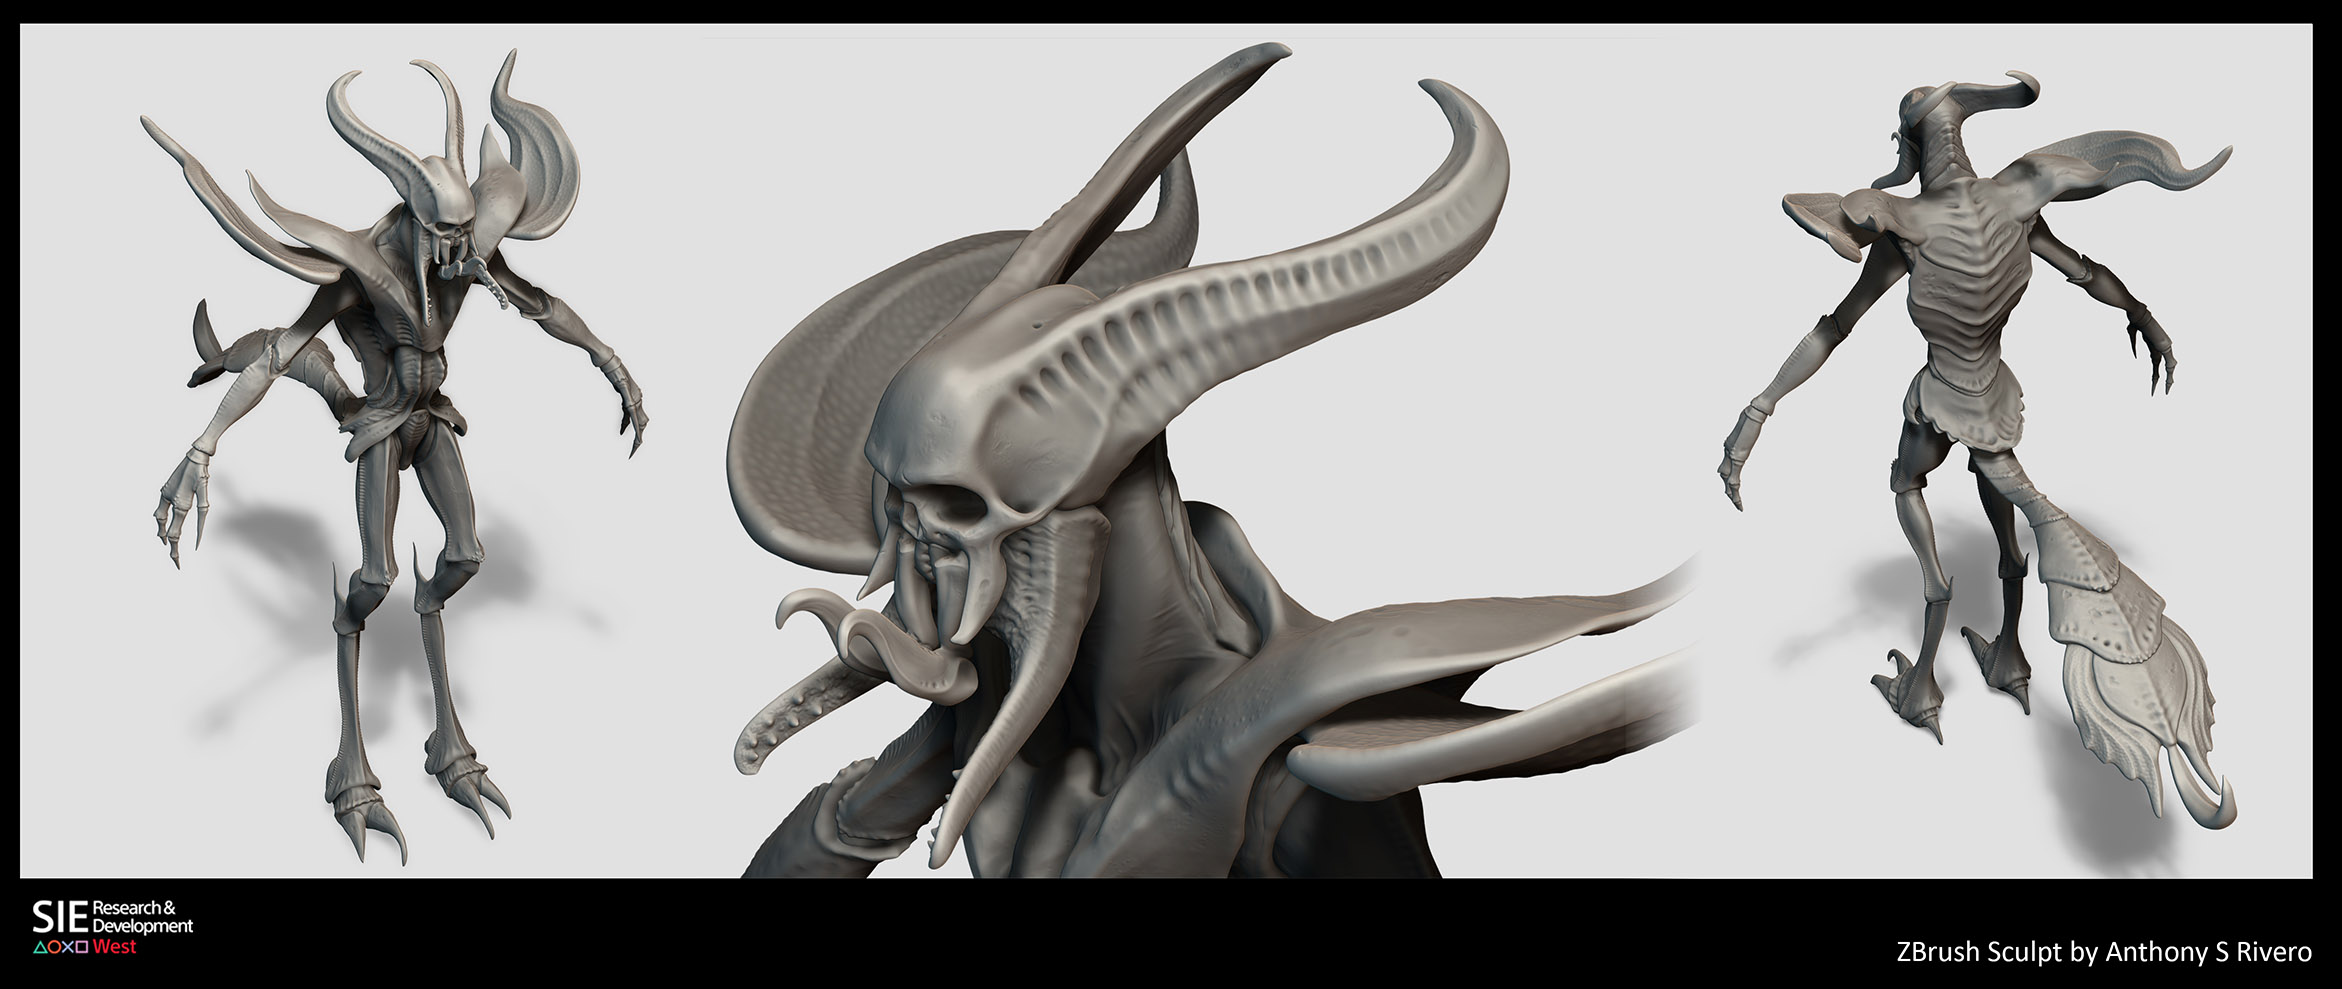 ID_Zbrush_Render_Iso_CU_01small.jpg